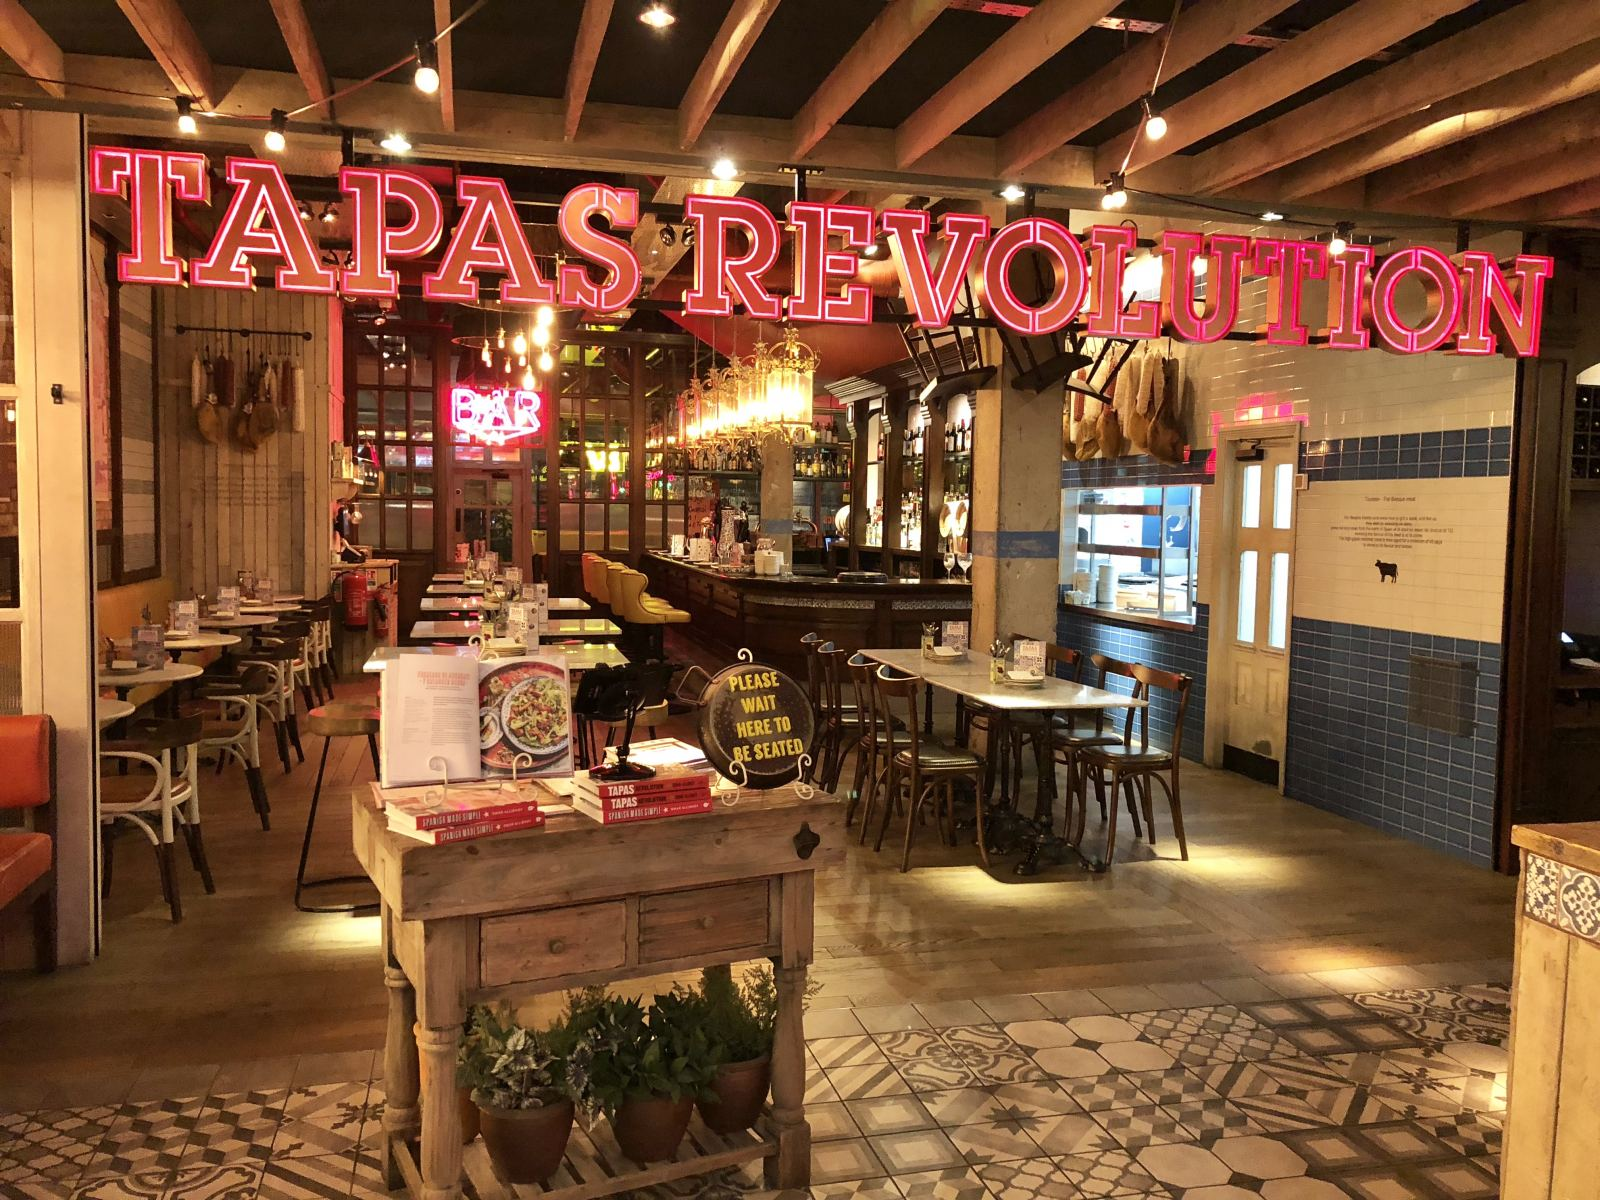 oPen frontage of Tapas revolution at Intu Eldon Square newcastle